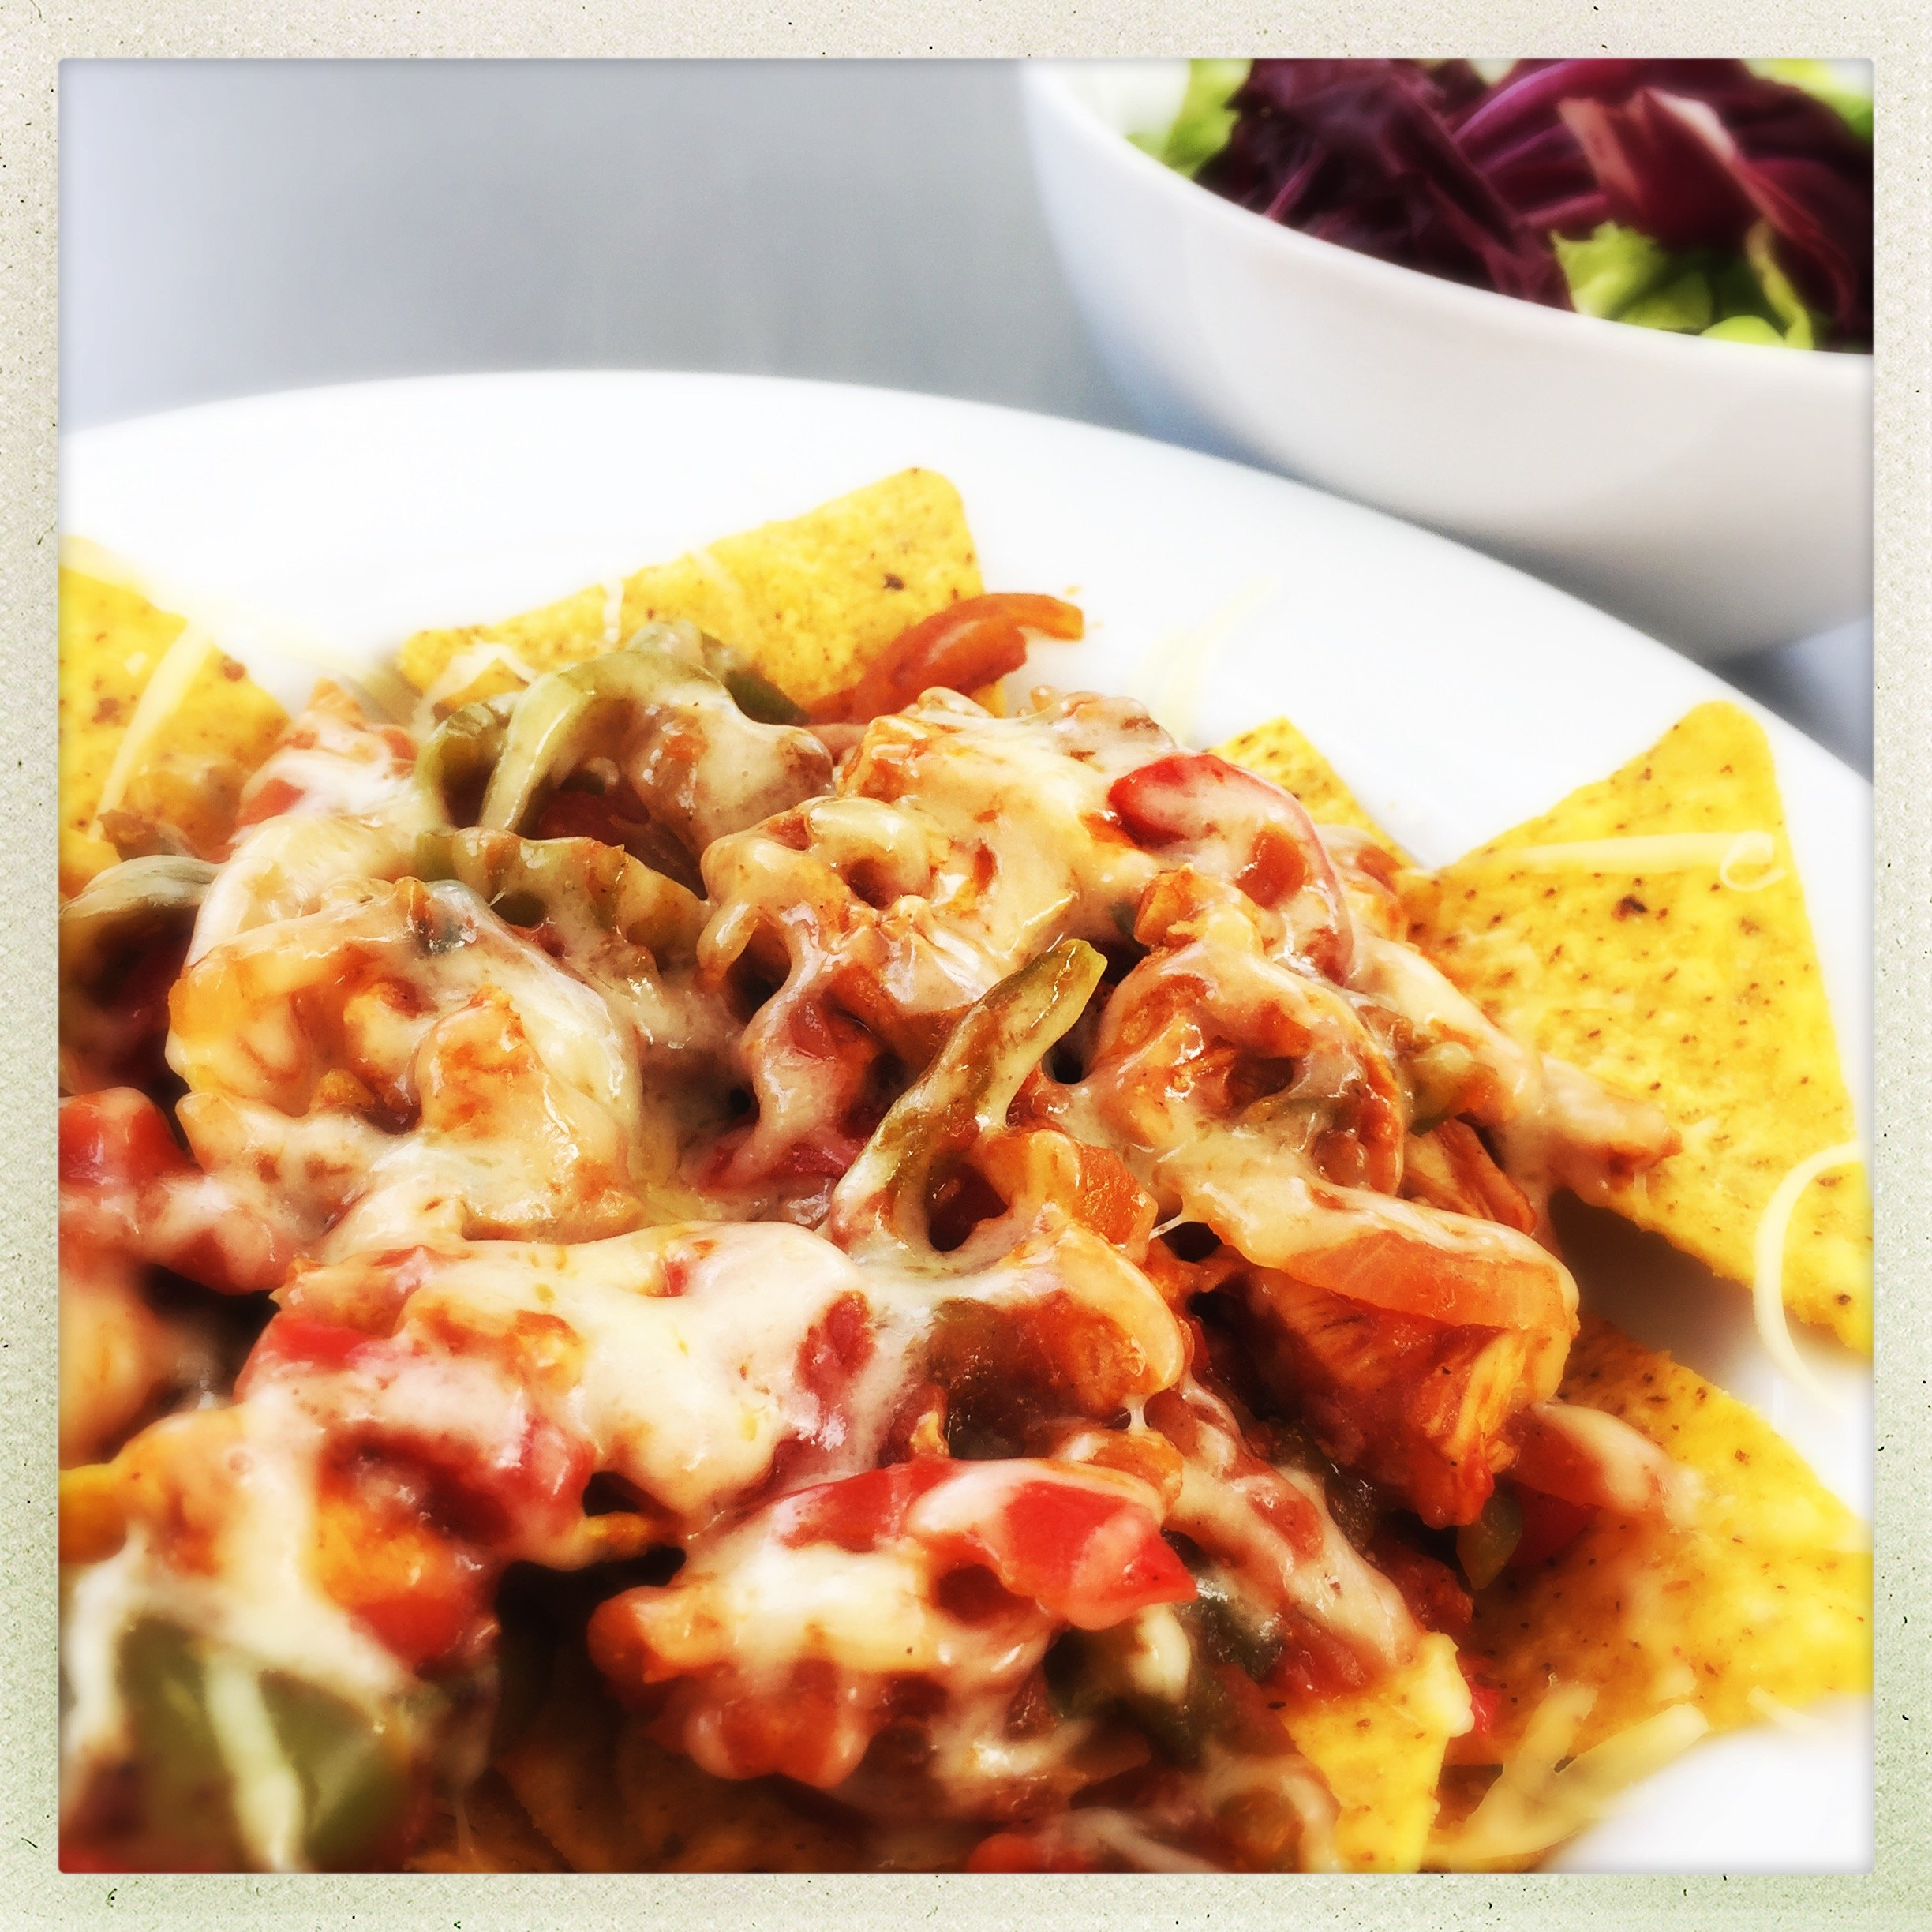 Loaded Nachos with Chilli Chicken and Cheese